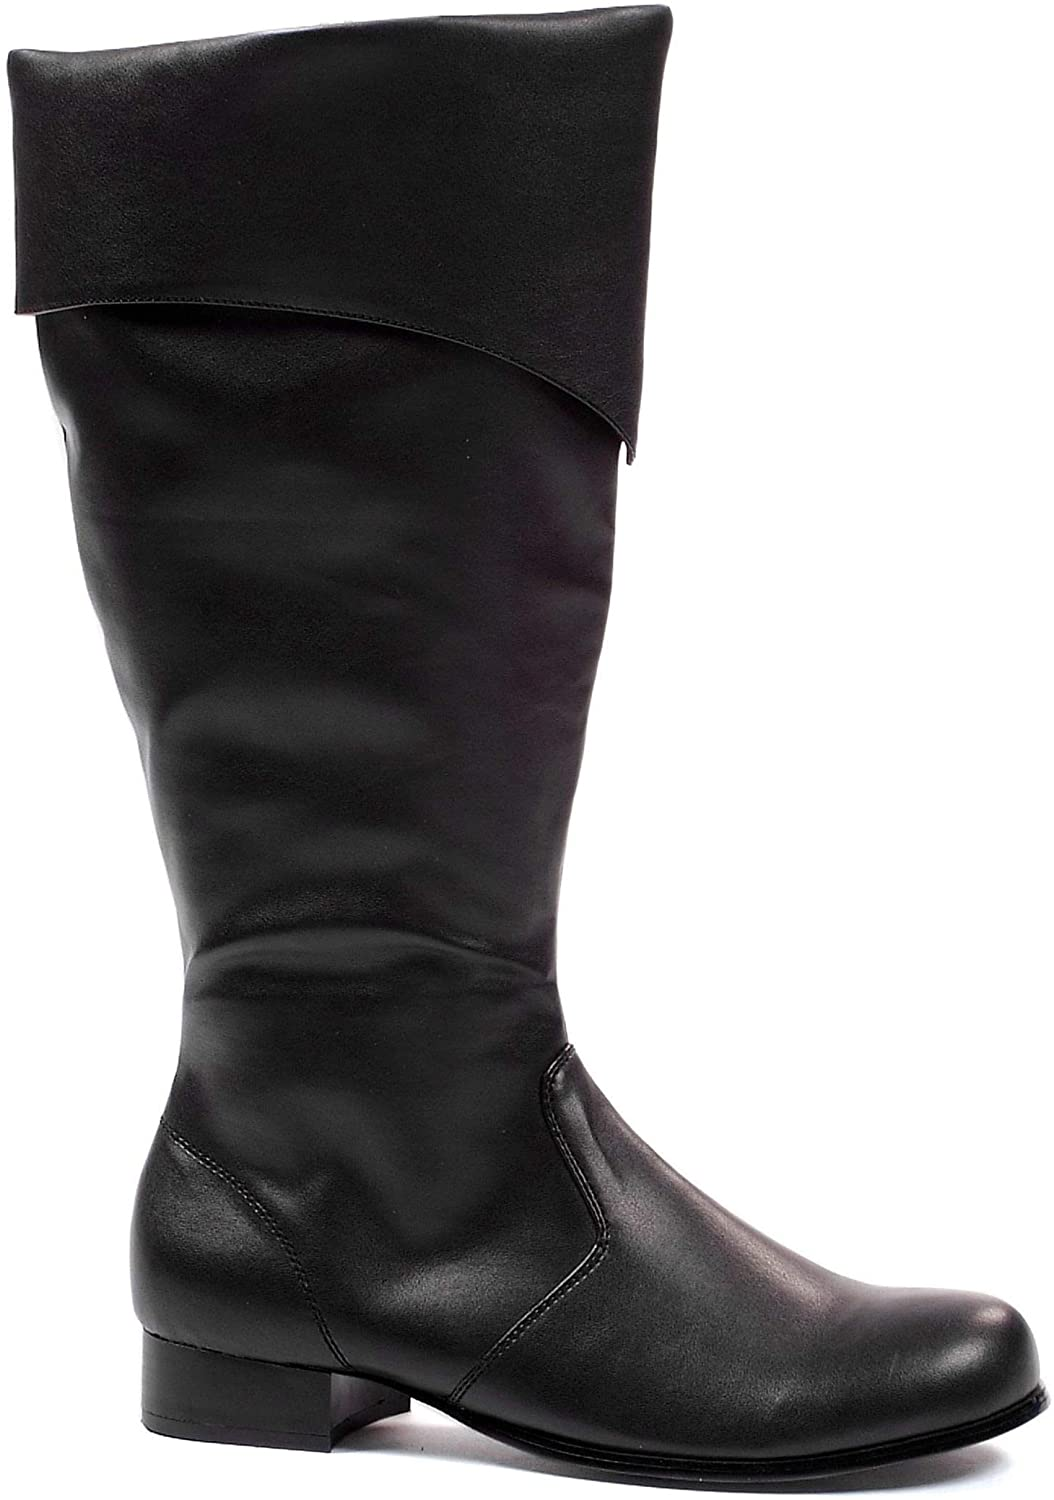 ELLIE SHOES ADULT TALL PIRATE BOOTS